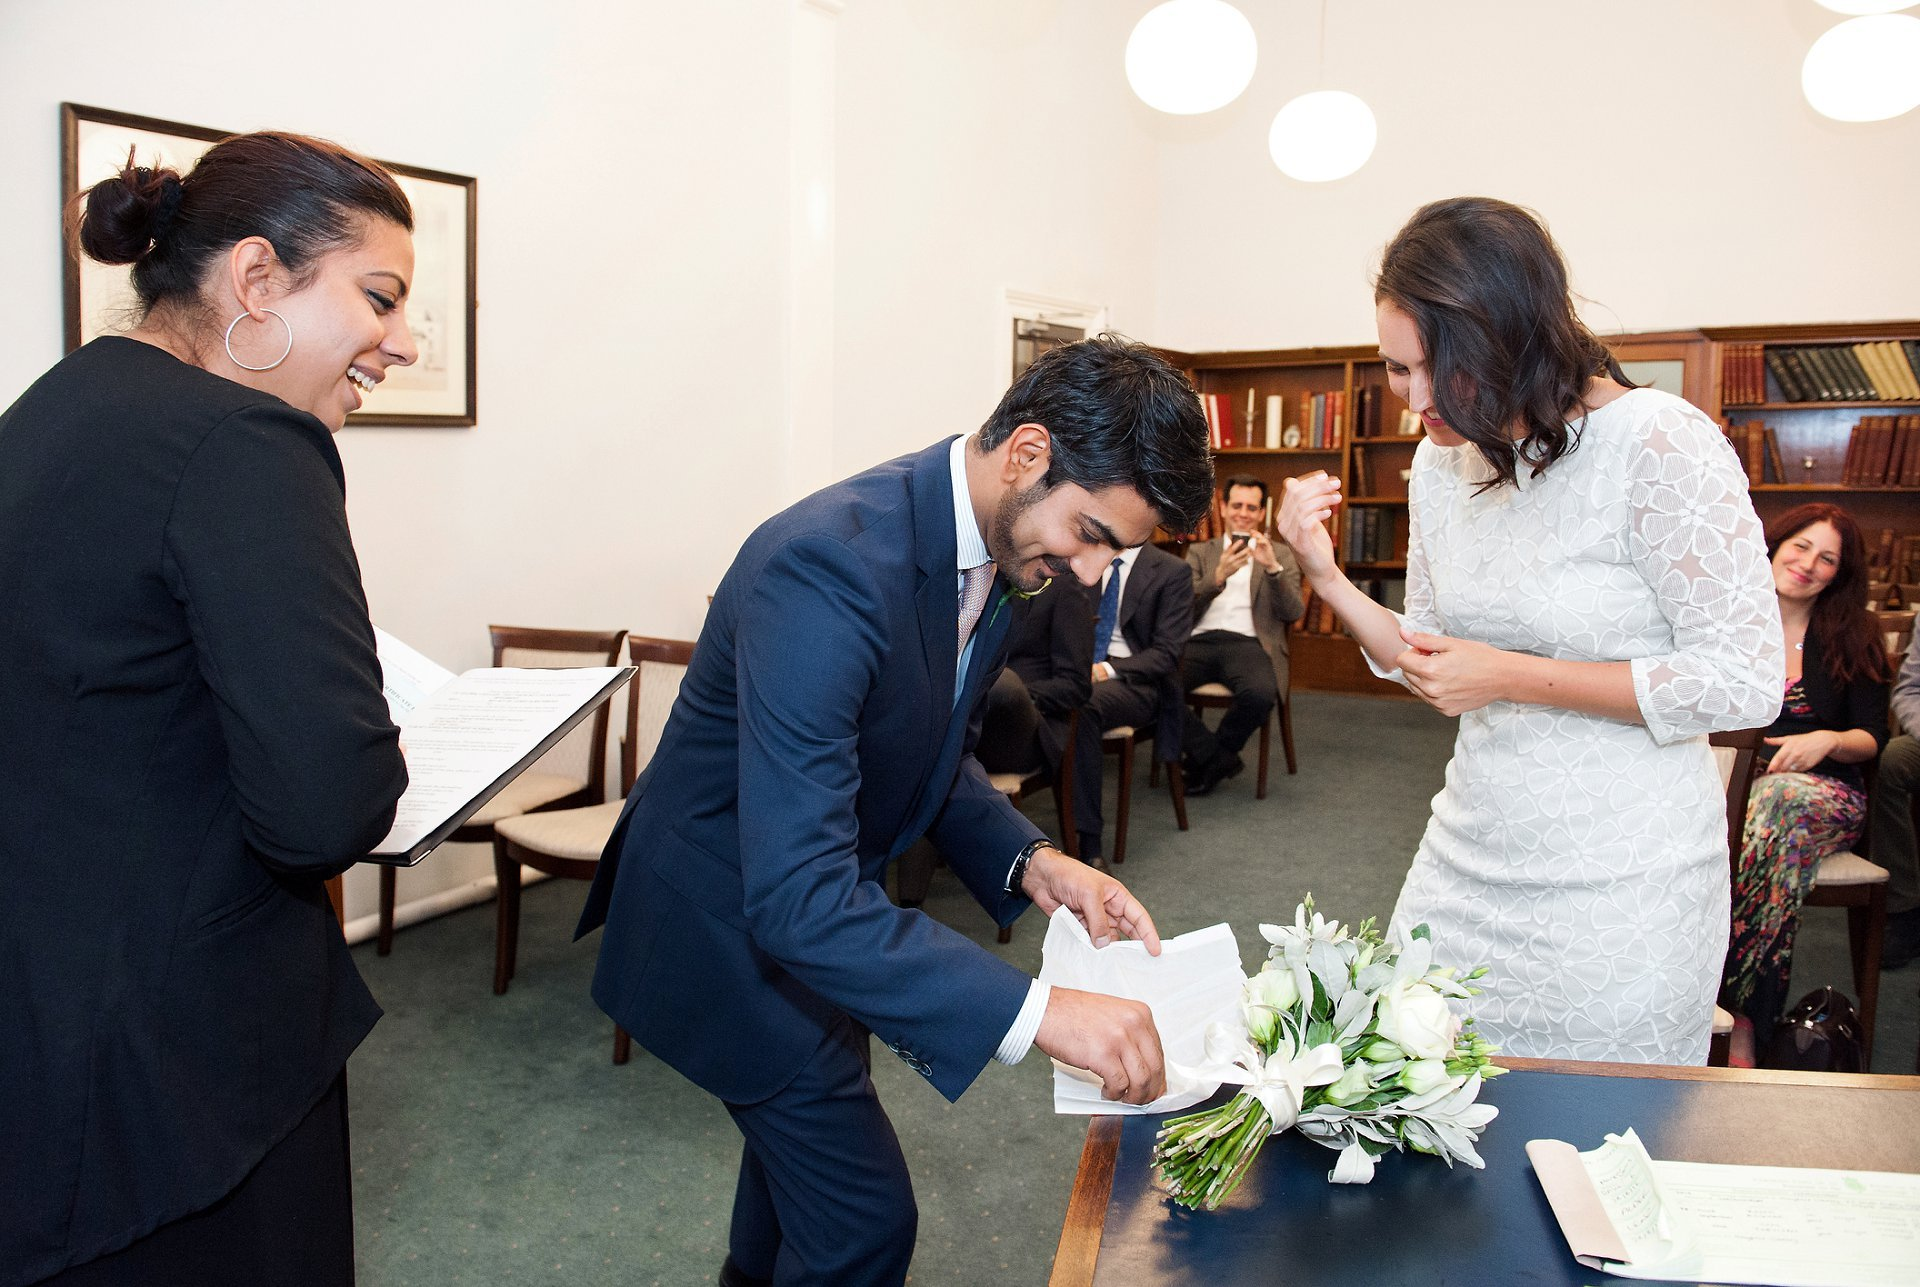 Mayfair Library wedding photography by Emma Duggan in the elegant Marylebone Room with the groom here picking up the wedding band to exchange rings with his bride to be